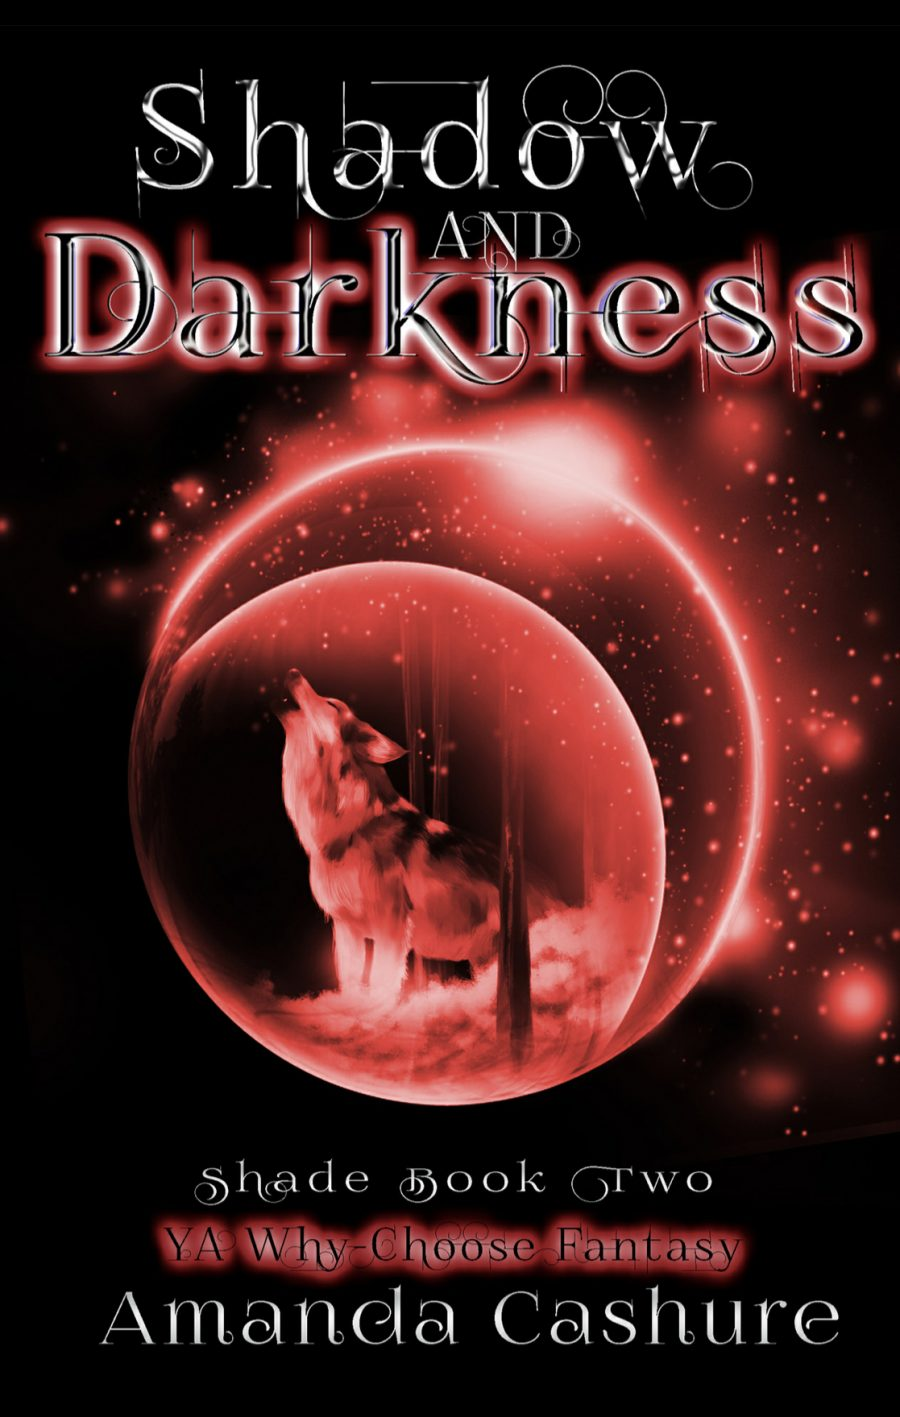 Shadow and Darkness by Amanda Cashure - A Book Review #BookReview #YA #RH #WhyChoose #Fantasy #KindleUnlimited #KU #4Stars